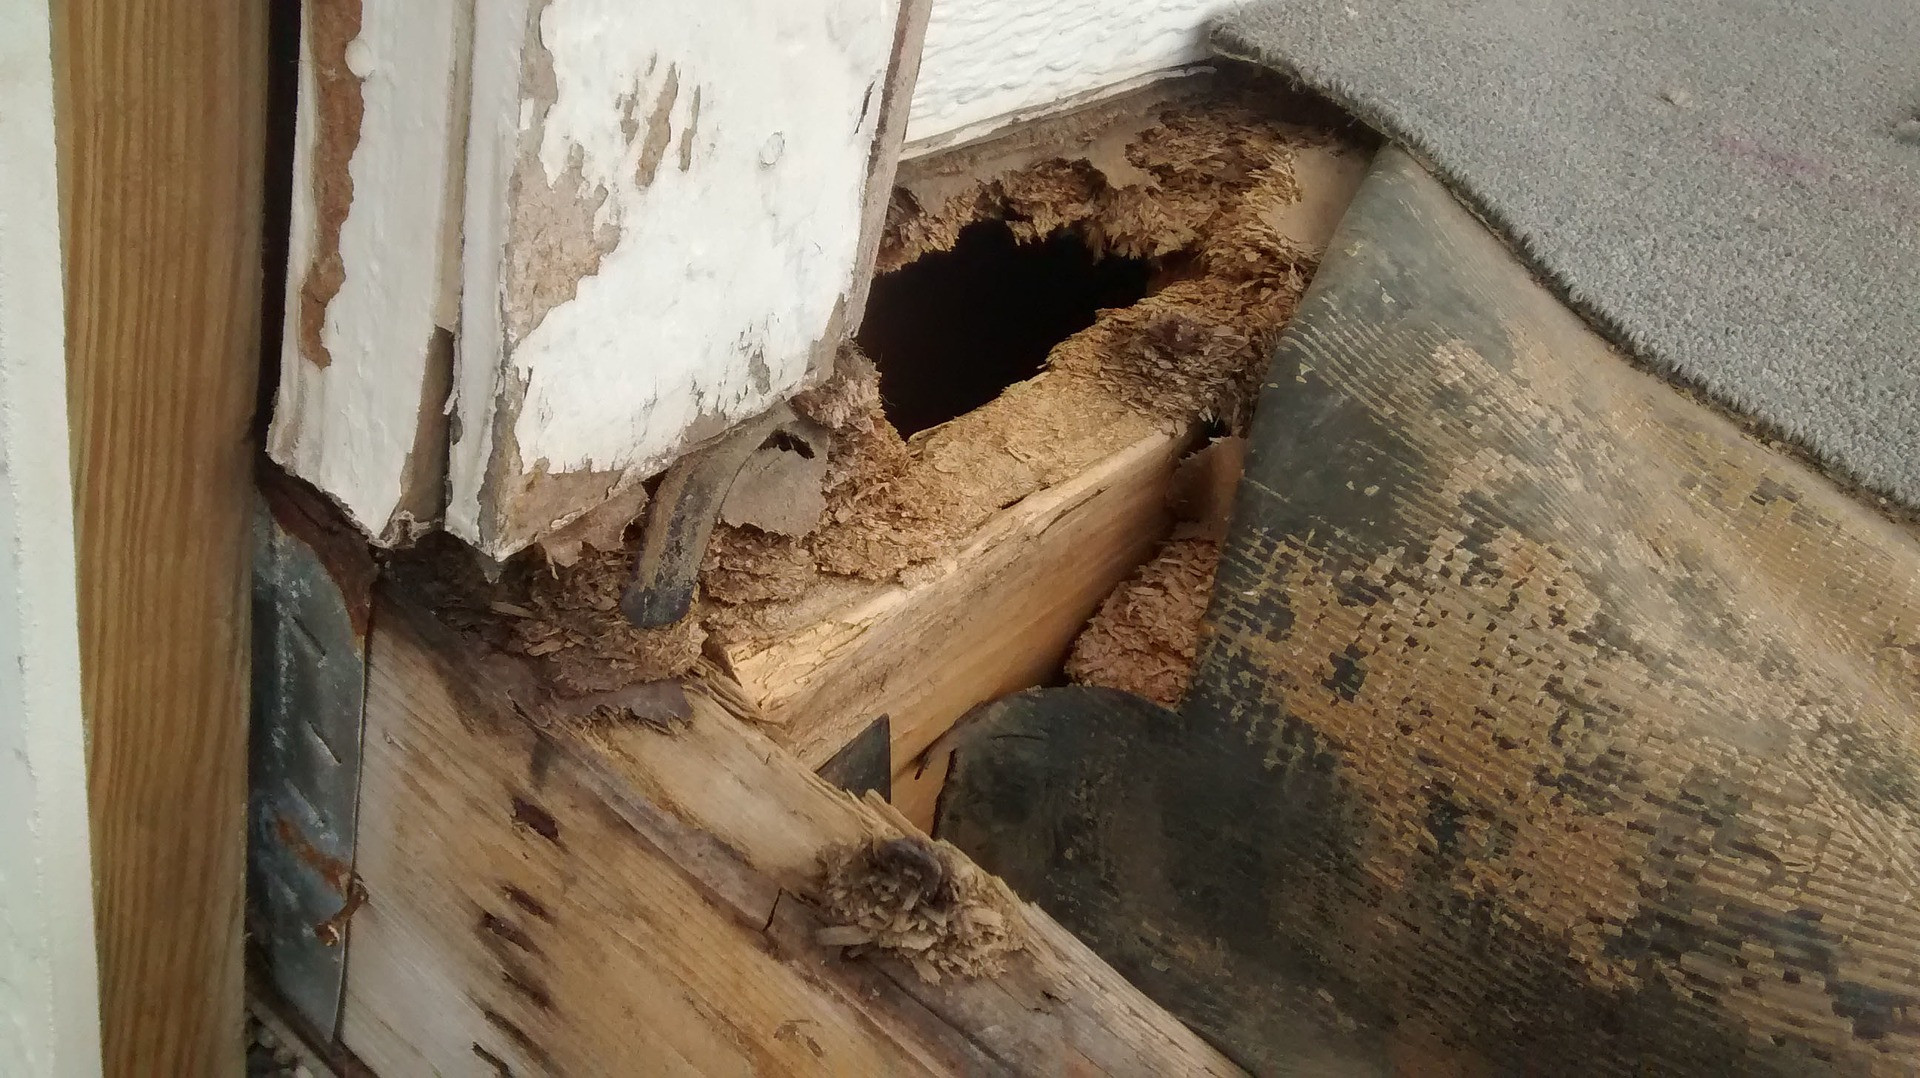 The BR Termite Inspection